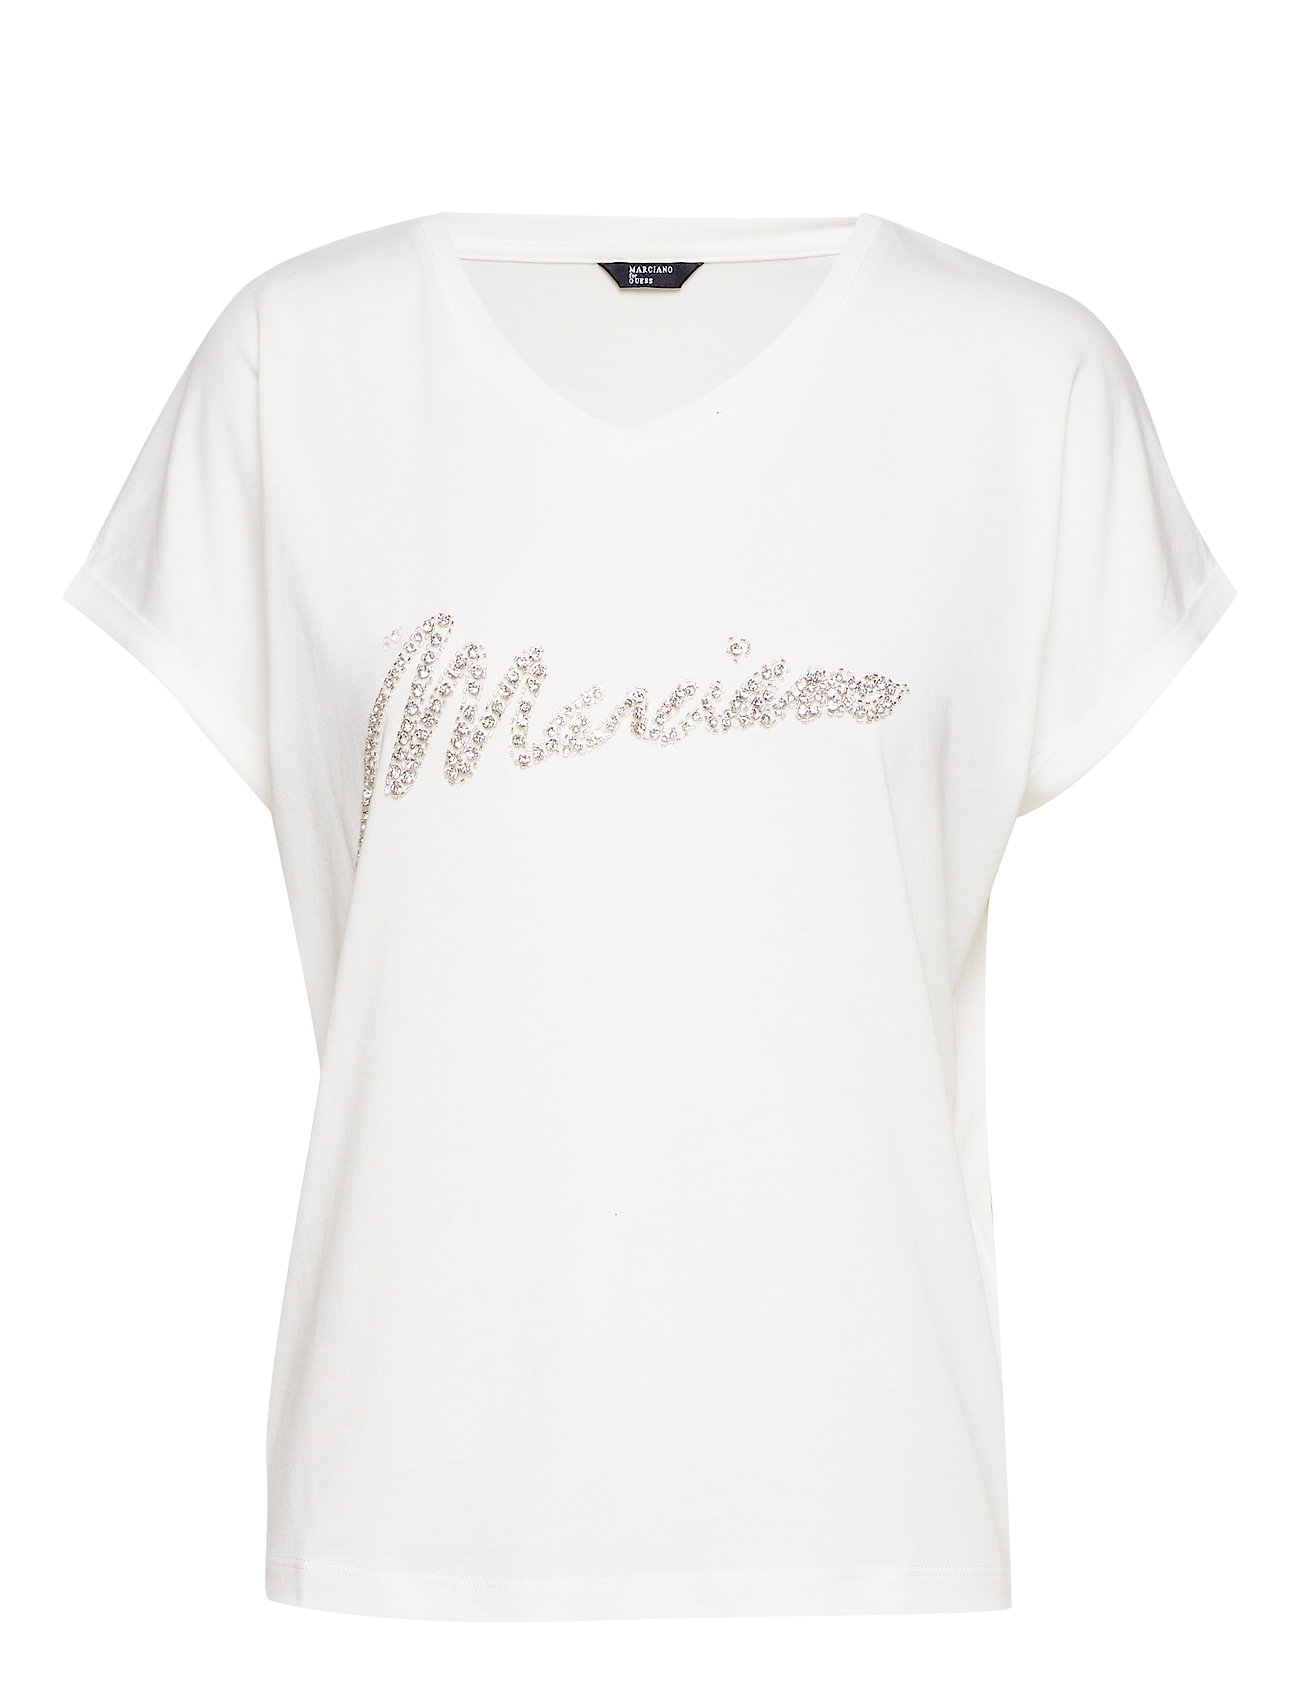 Marciano by GUESS CRYSTAL LOGO TEE - FROSTED WHITE